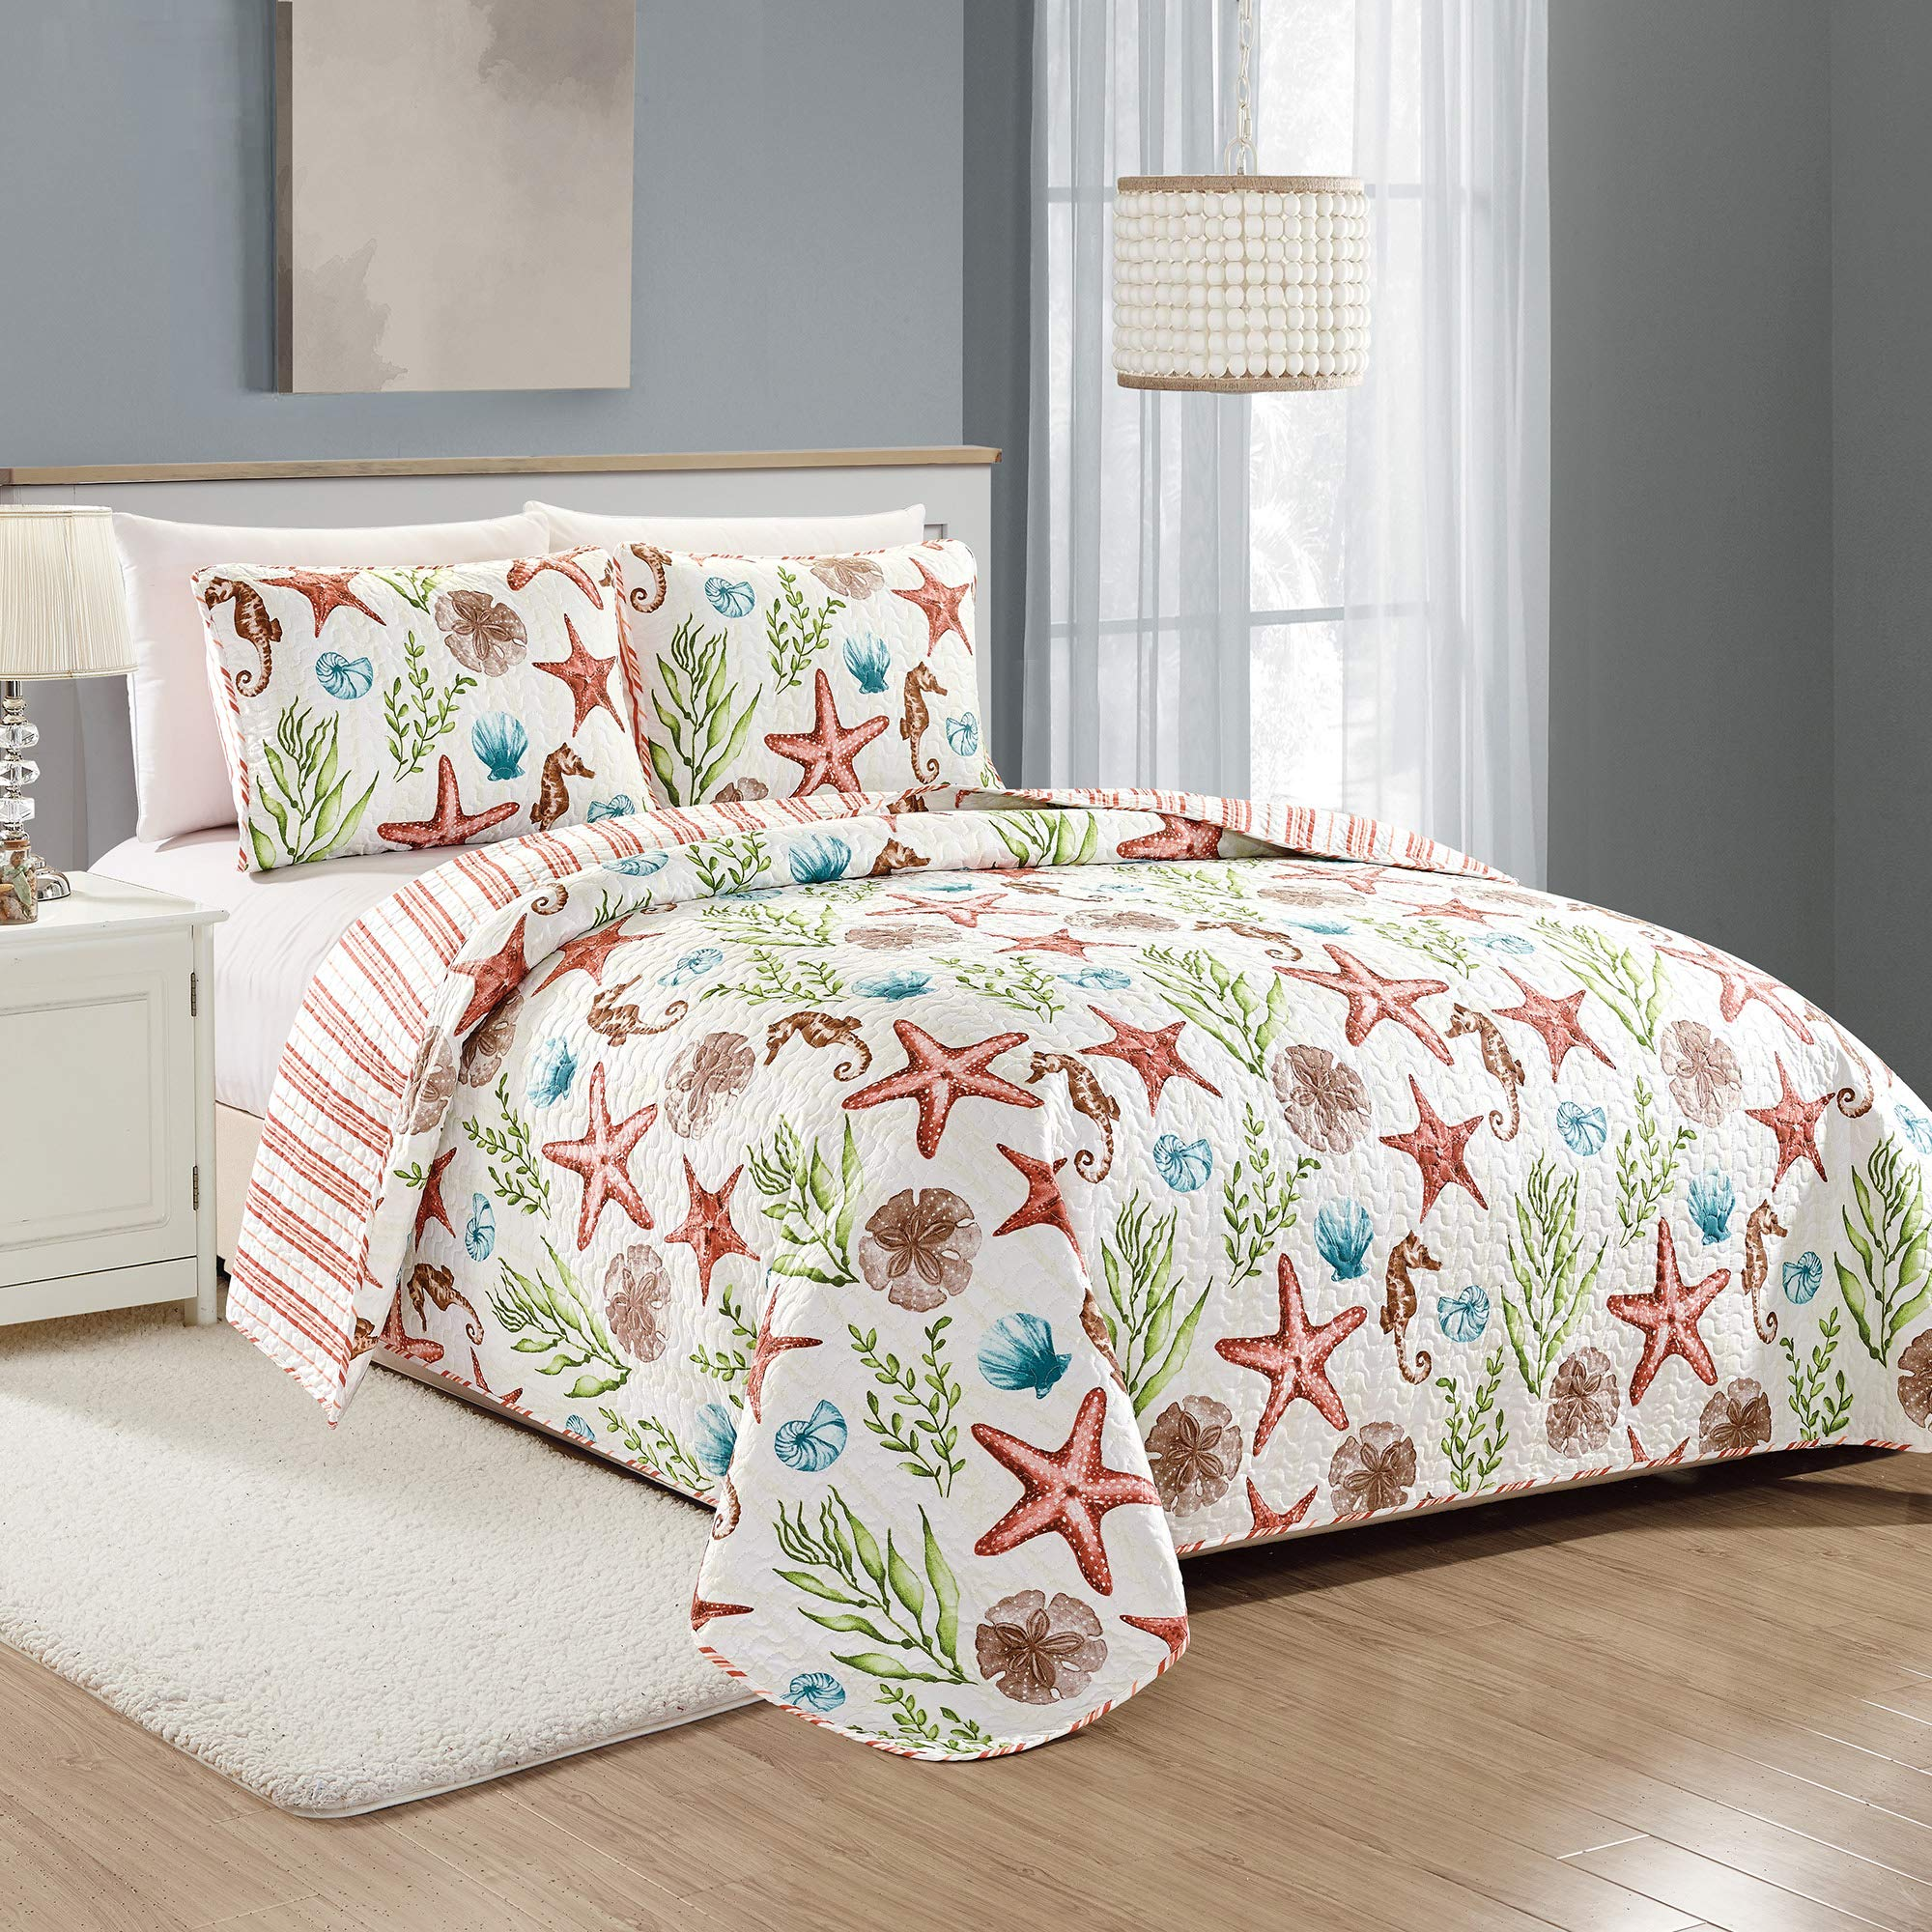 Great Bay Home Castaway Coastal Collection 3 Piece Quilt Set with Shams. Reversible Beach Theme Bedspread Coverlet. Machine Washable. (Full/Queen, Multi) by Great Bay Home (Image #1)